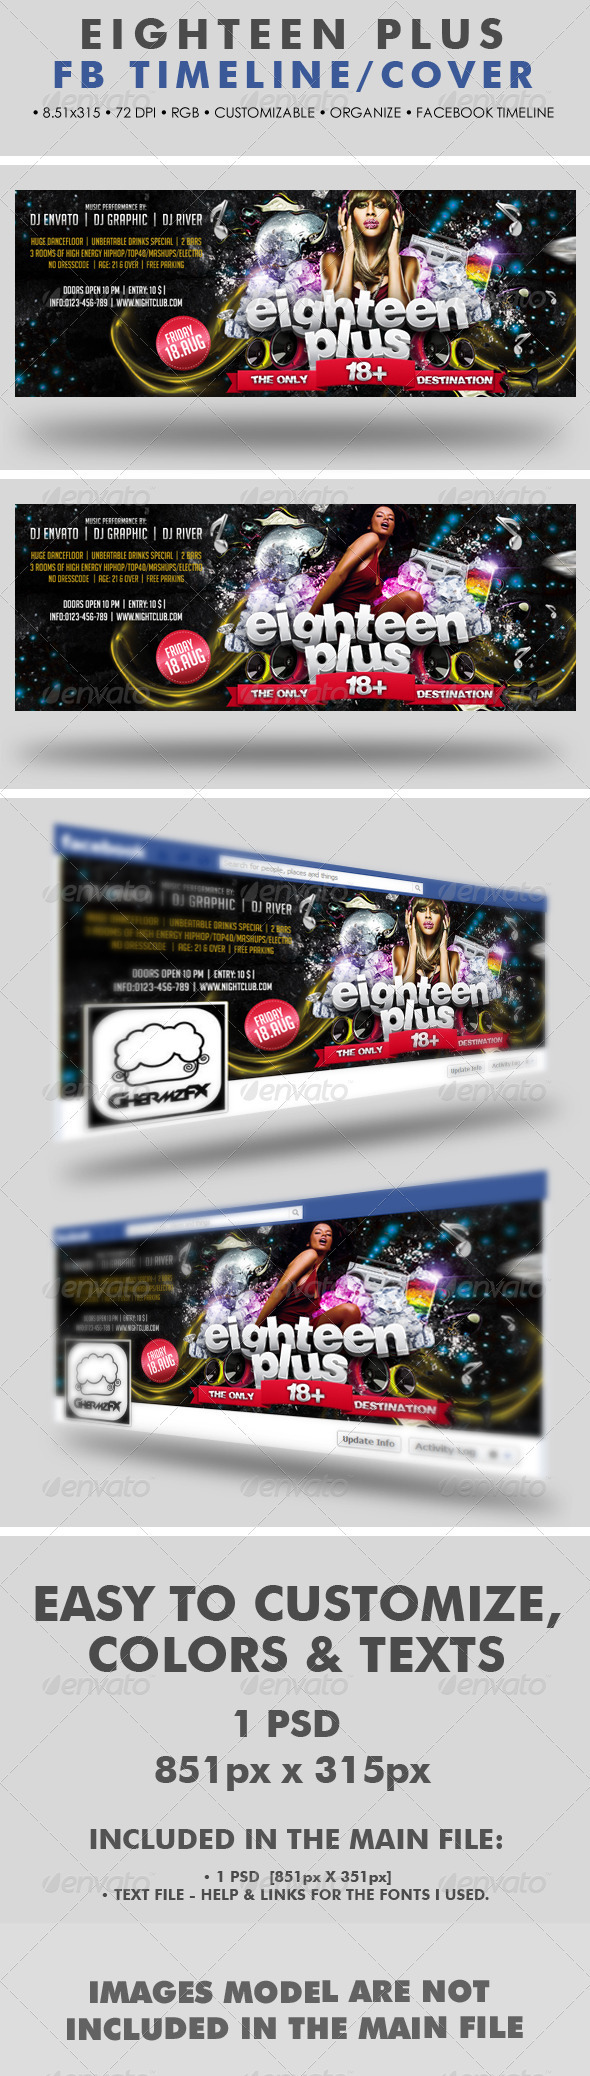 Graphicriver Eighteen Plus Facebook Timeline Cover